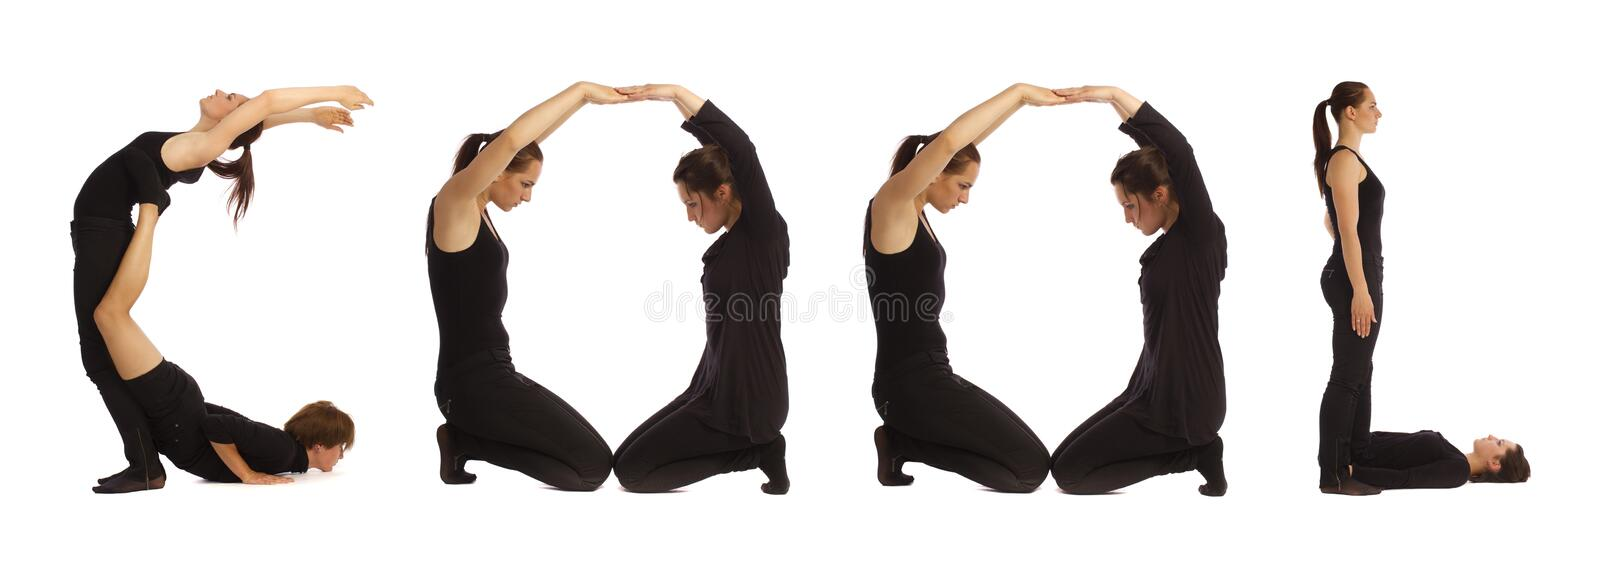 Black dressed people forming COOL word stock photos